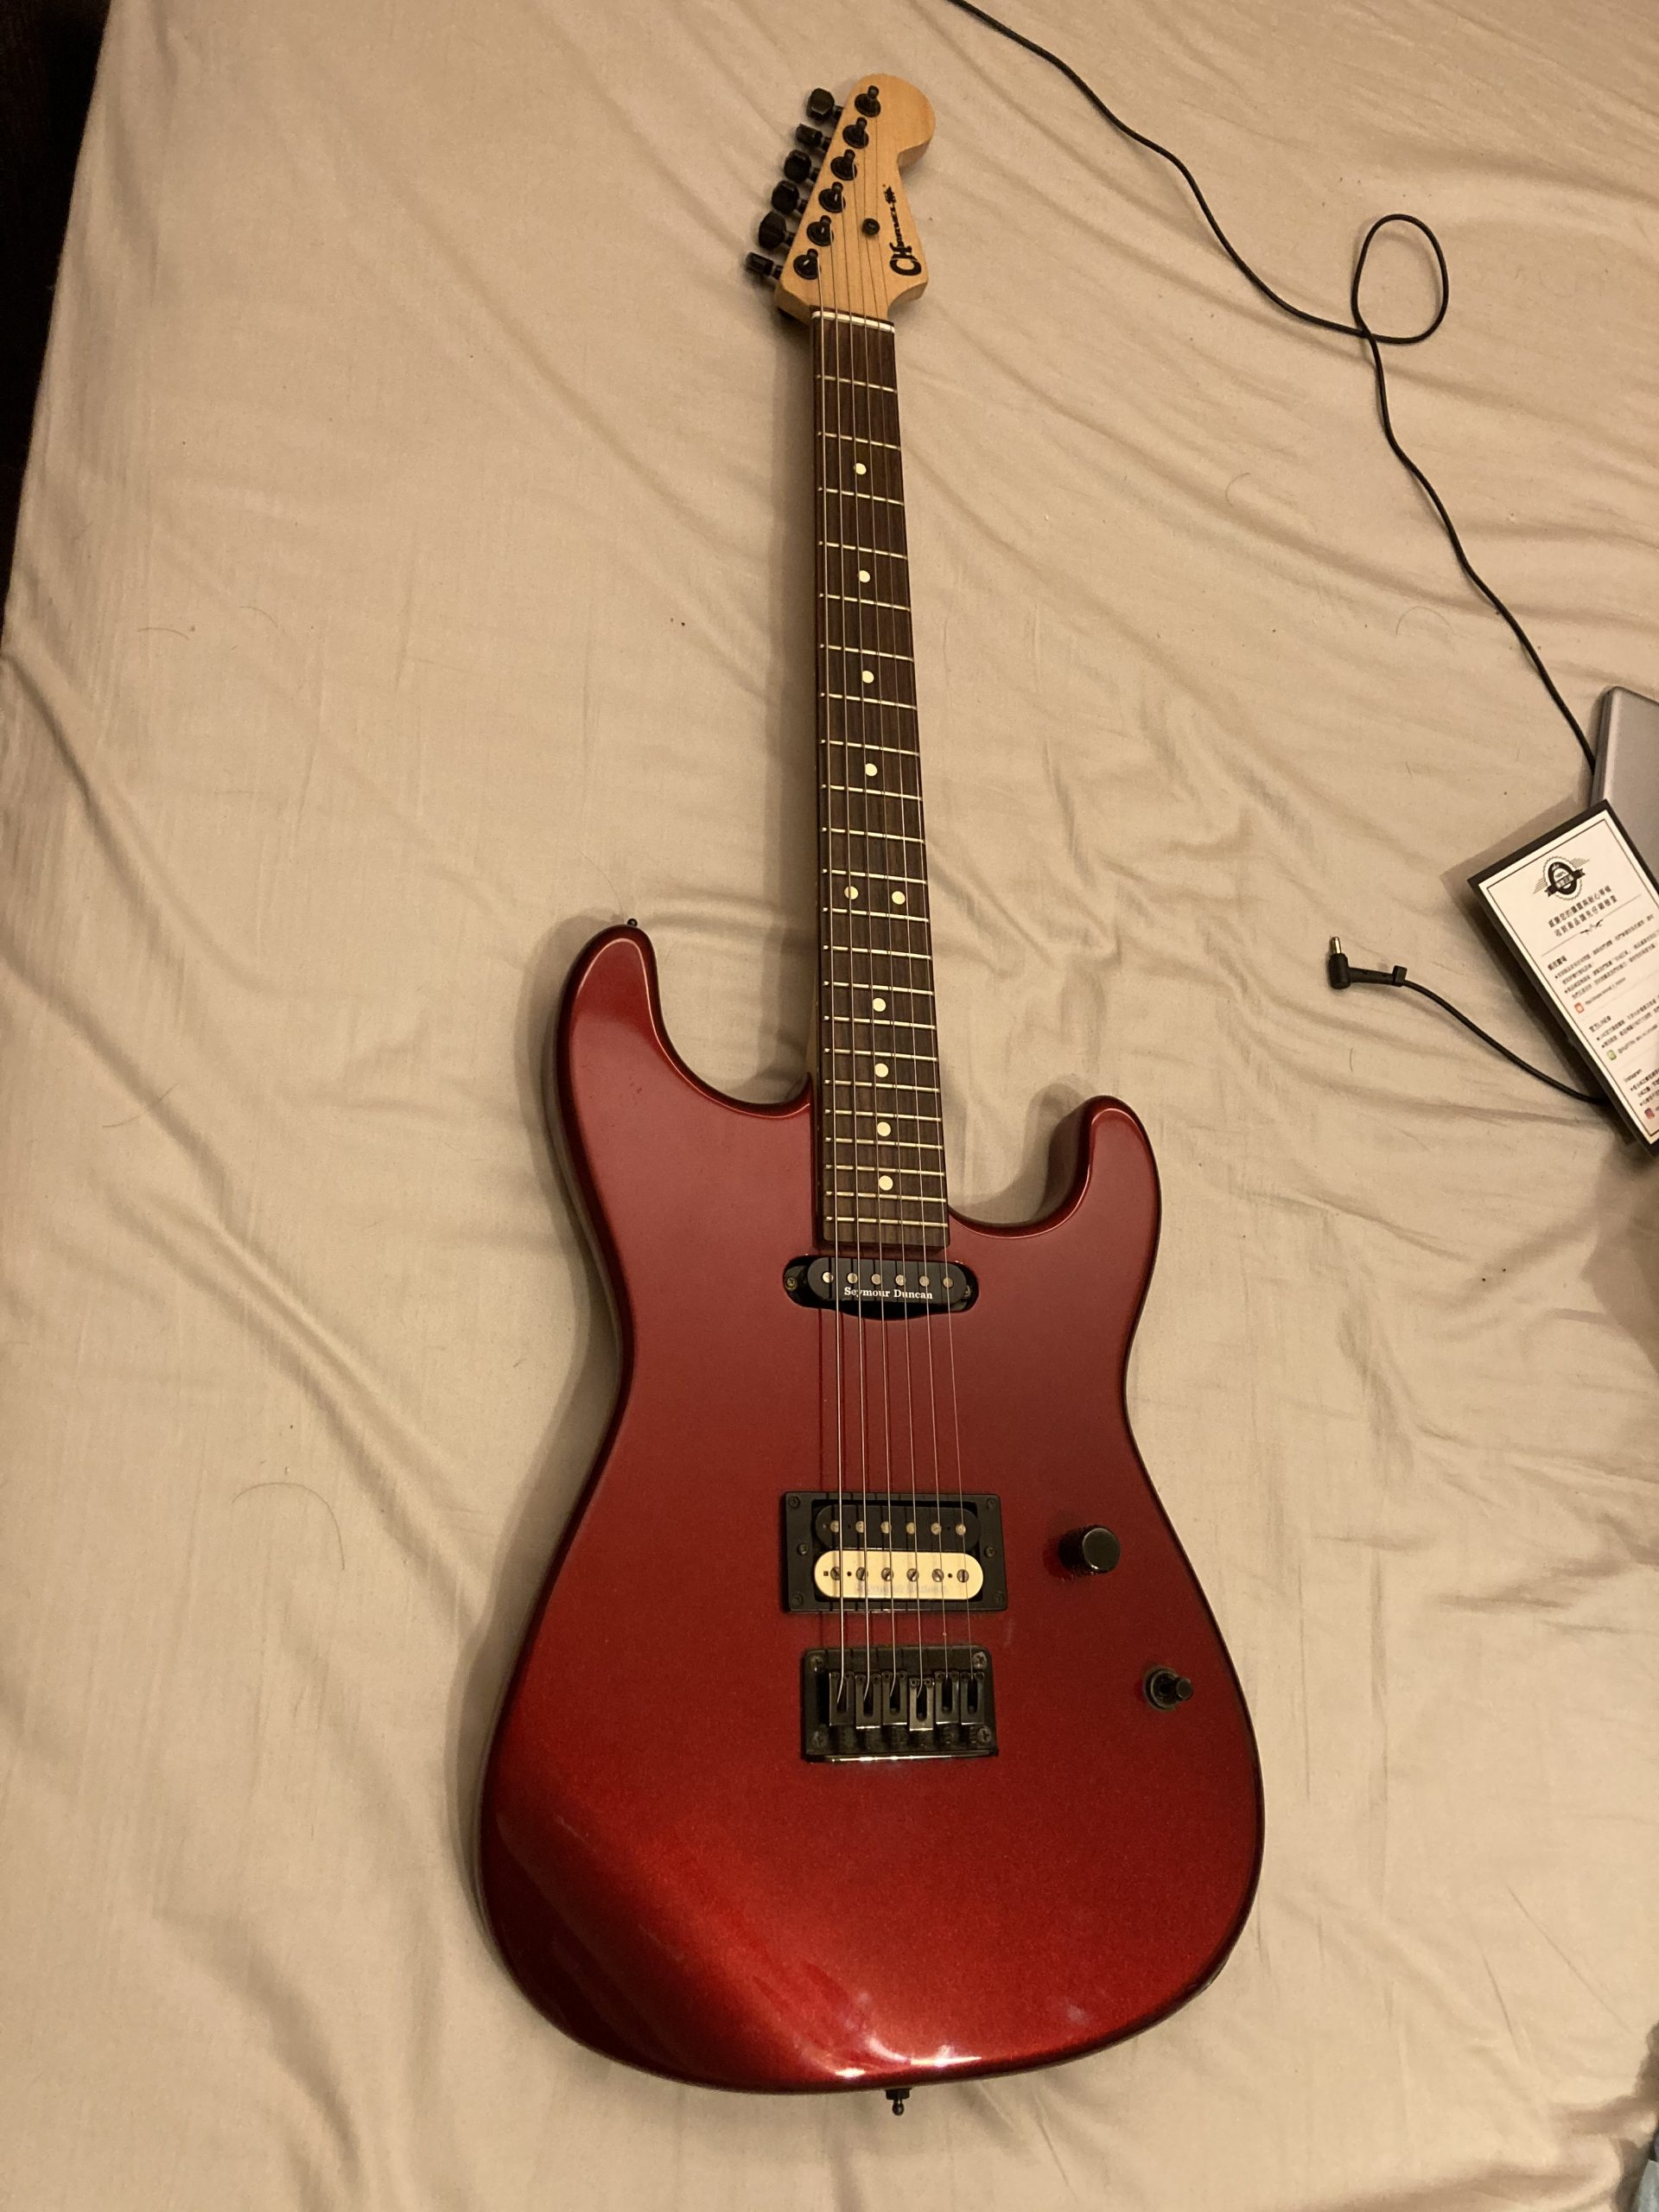 Charvel san dima made in mexico